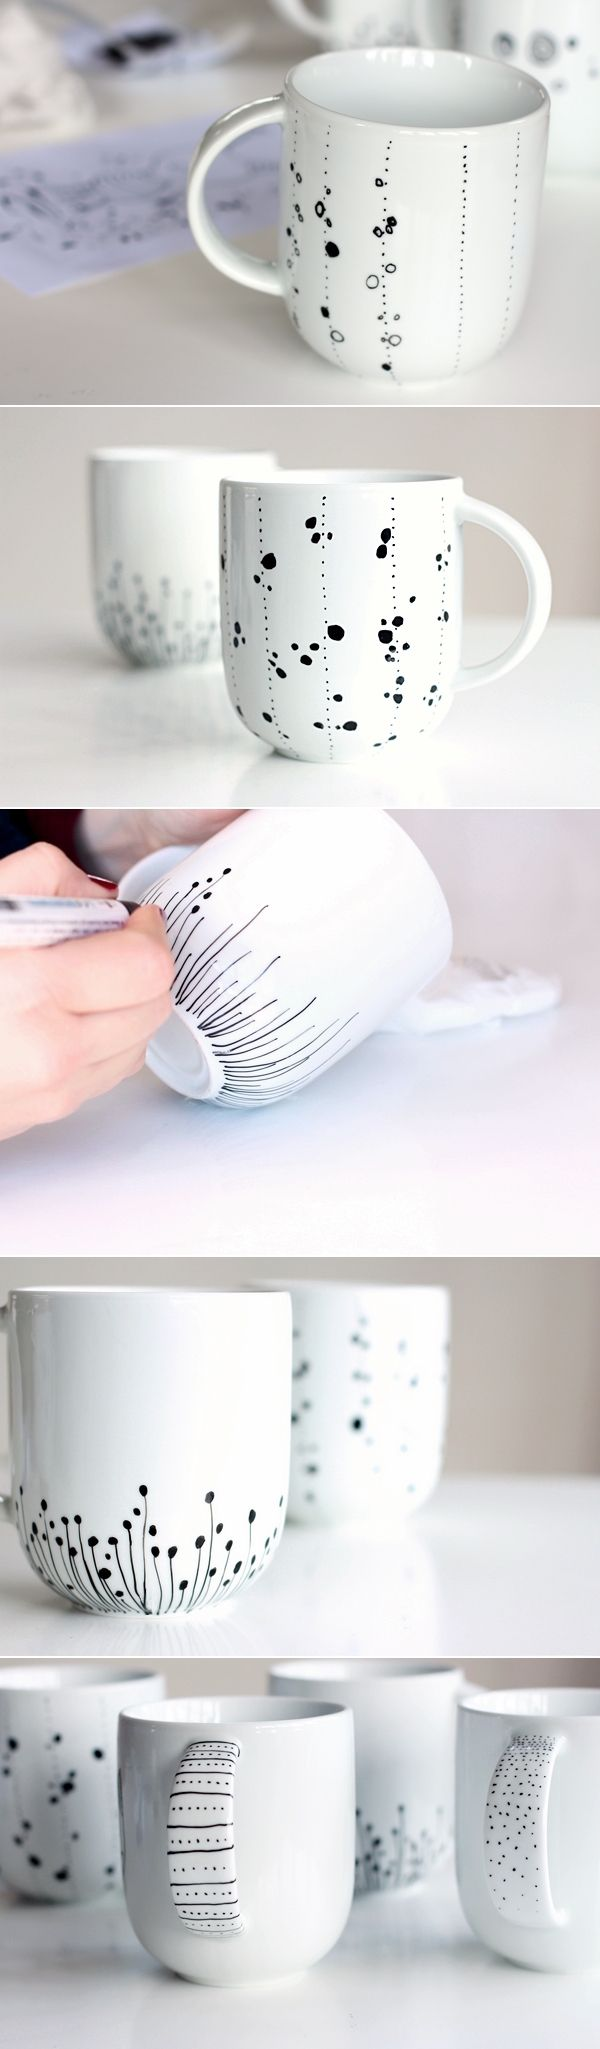 How to Decorate a Coffee Mug Using a Porcelain Marker                                                                                                                                                                                 More